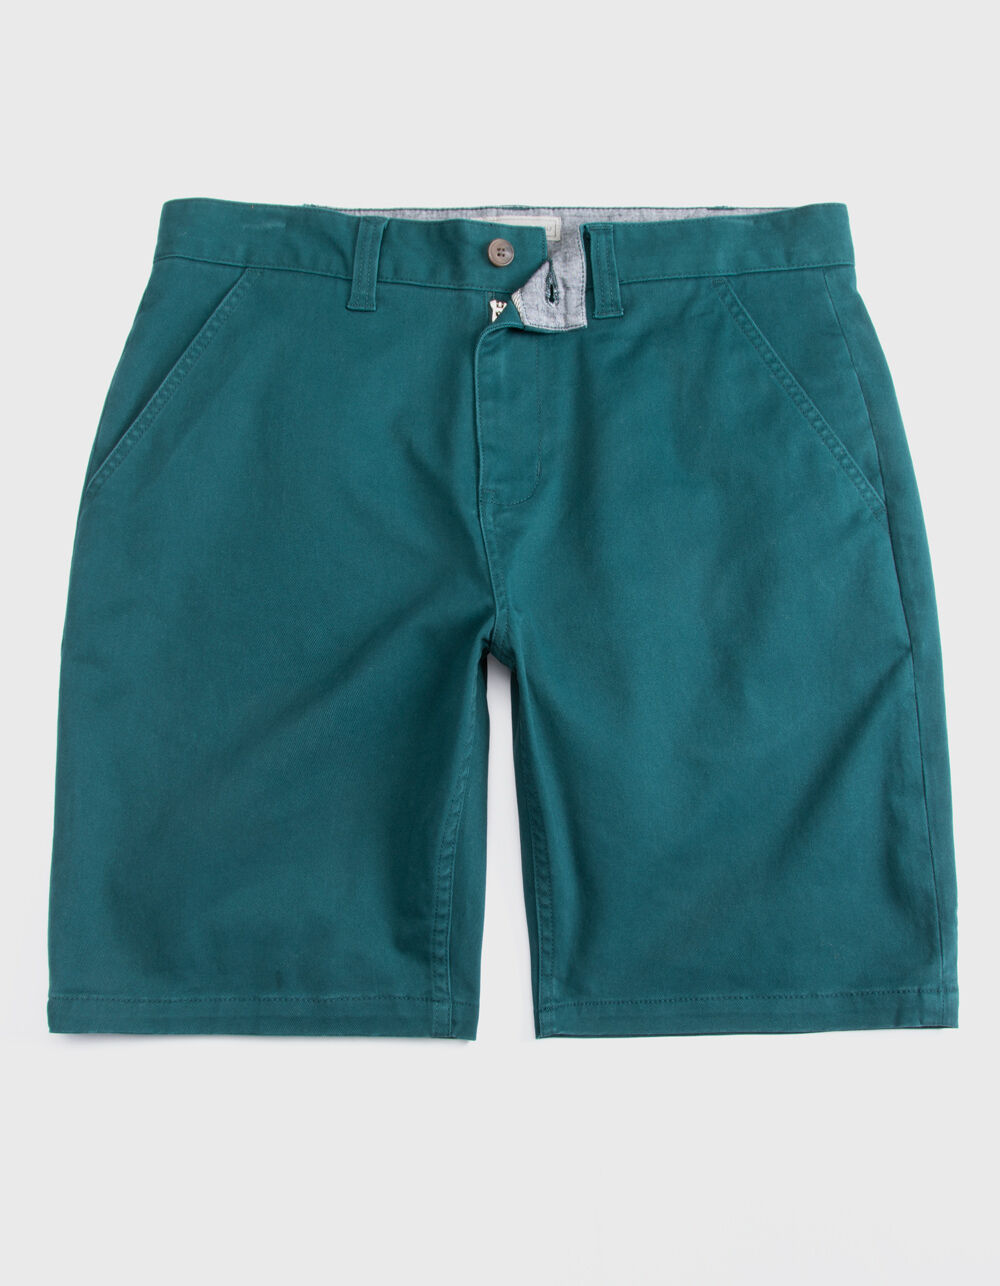 CHARLES AND A HALF Lincoln Stretch Teal Blue Shorts